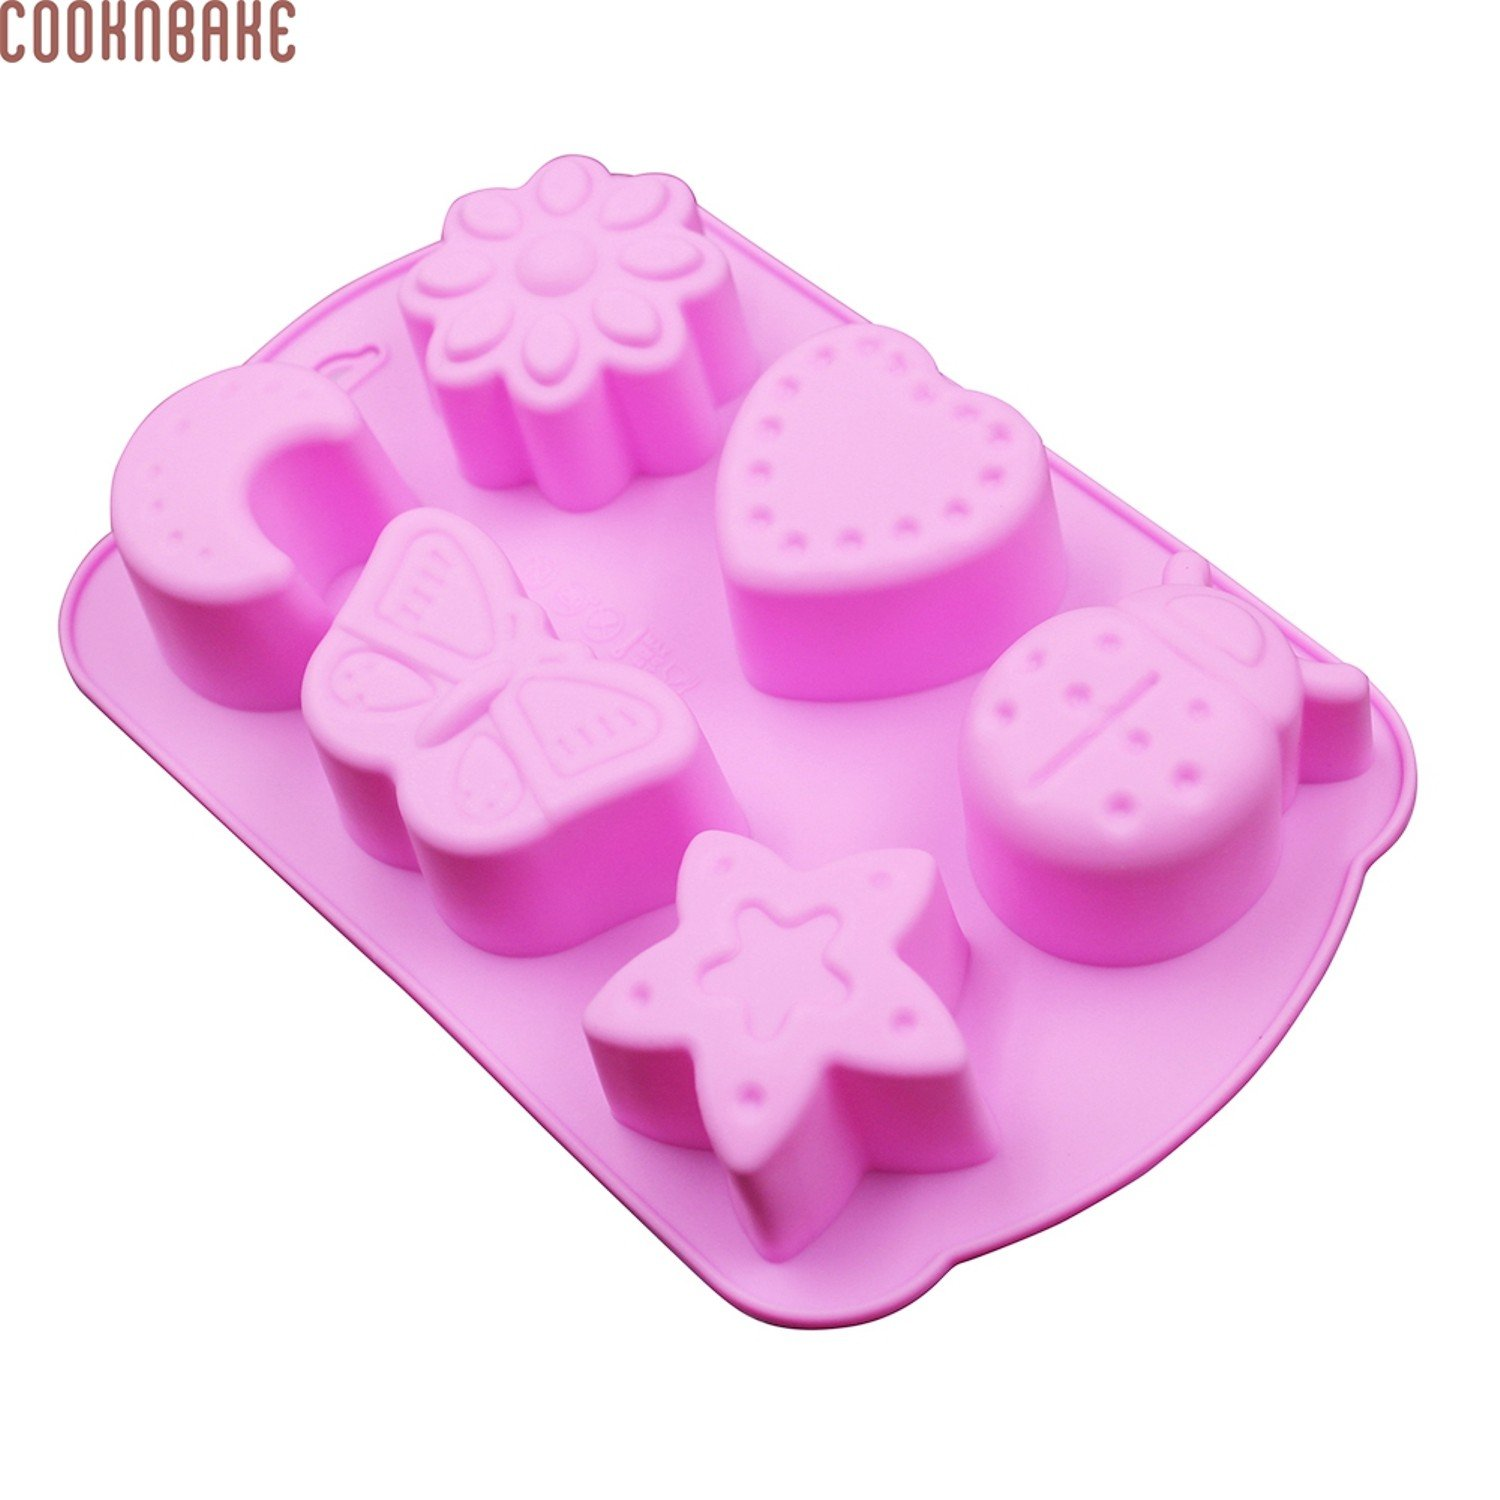 Convenient Durable 6 Cavity Silicone Mold for Cake, Chocolate, Ice cube, Jelly with Moon Insect Design Tool